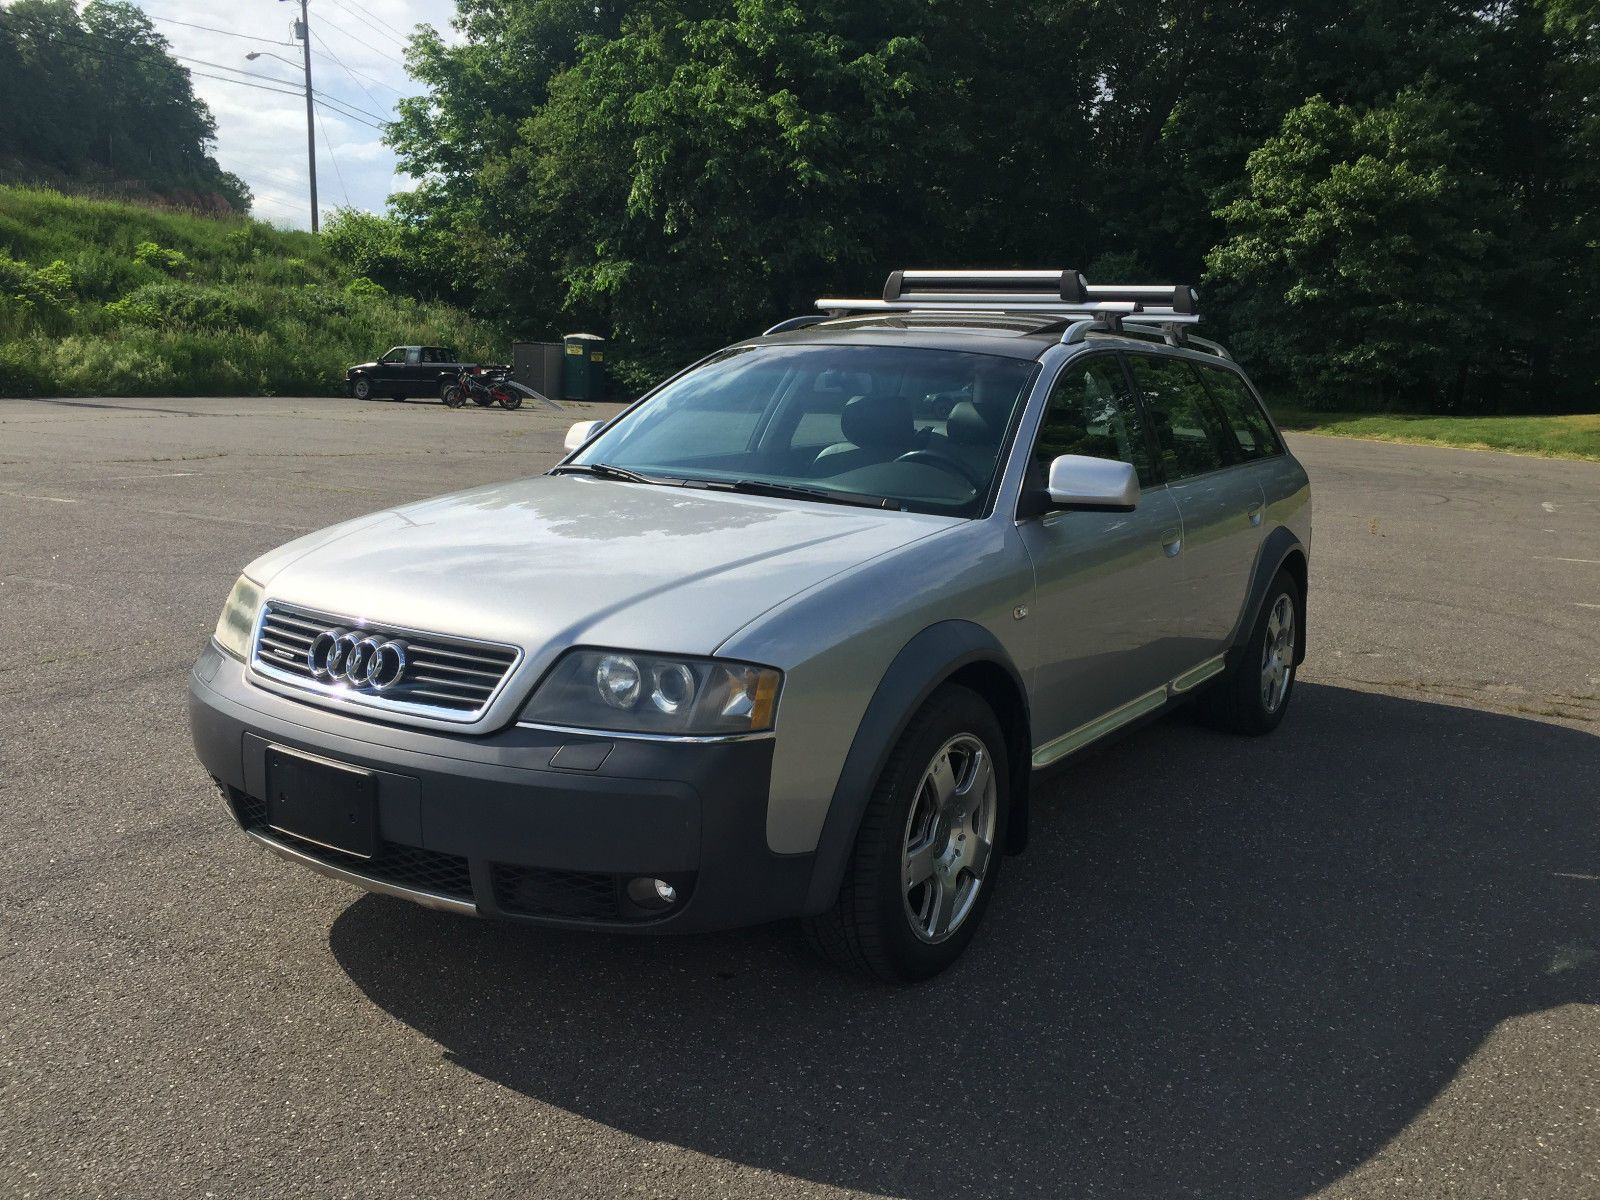 file wiki audi wikimedia jpg allroad commons